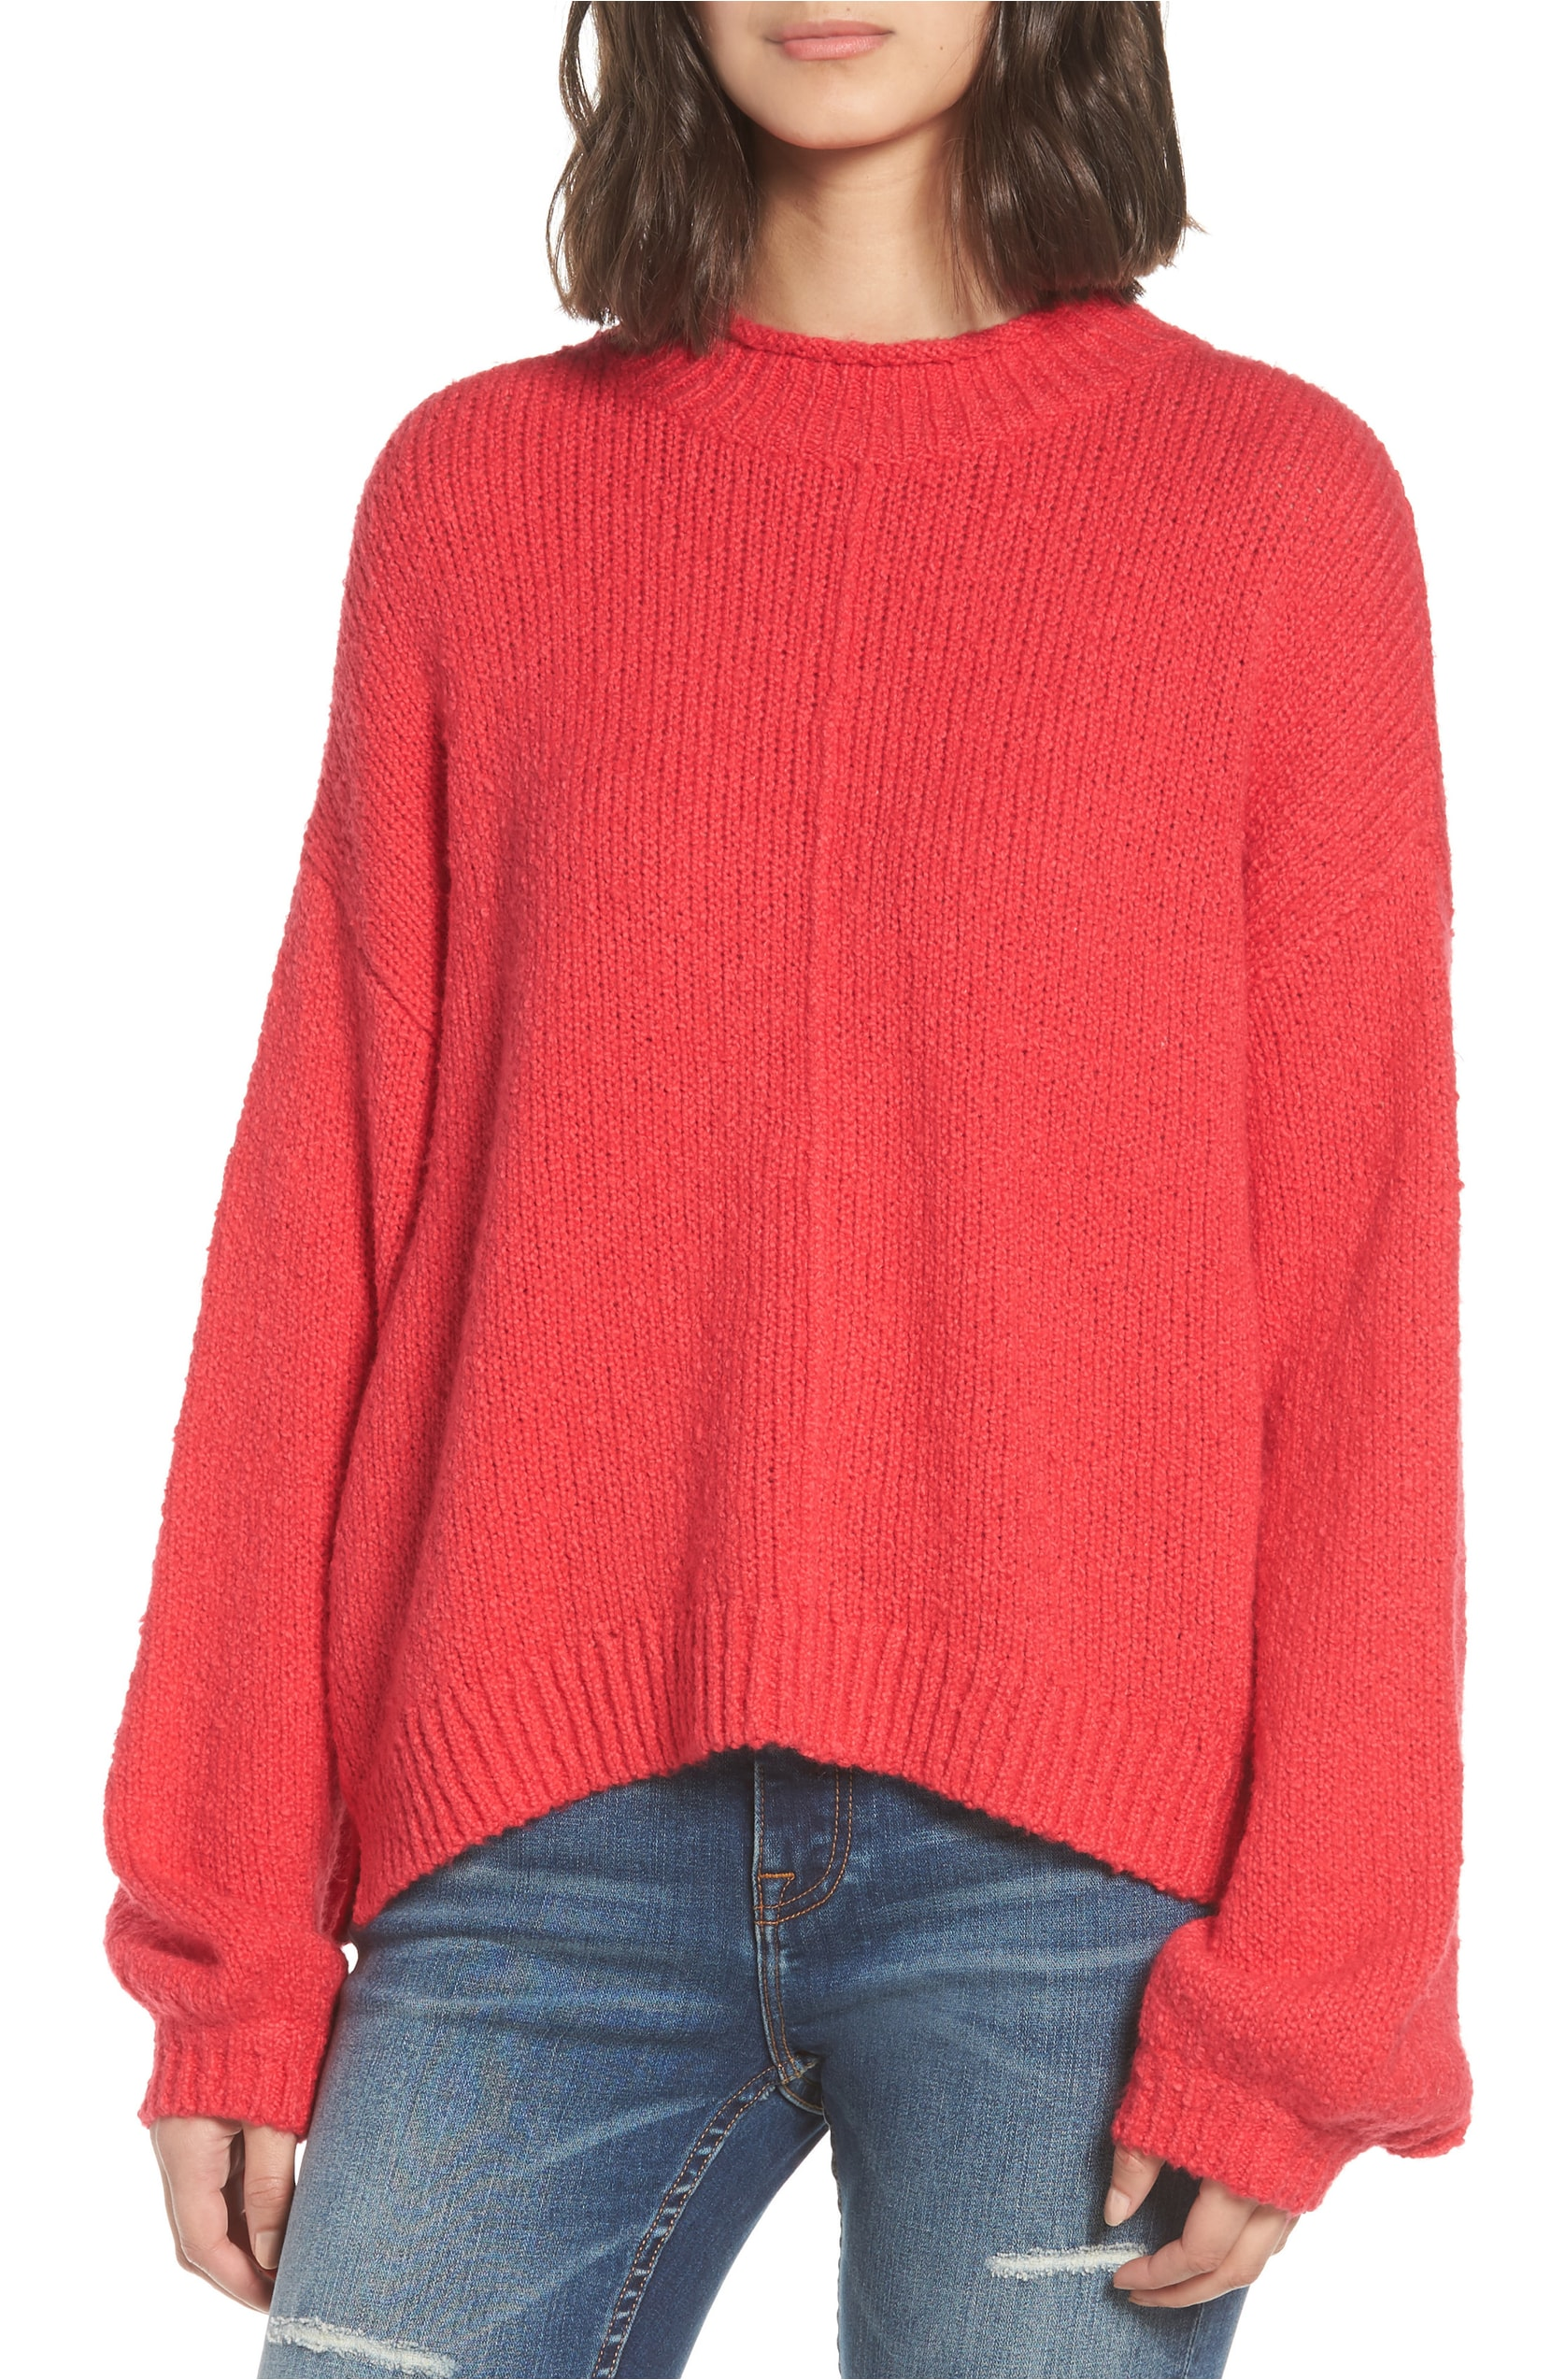 Balloon Sleeve Sweater. Sale: $31.90 / After Sale:$49.00. (Image: Nordstrom){ }